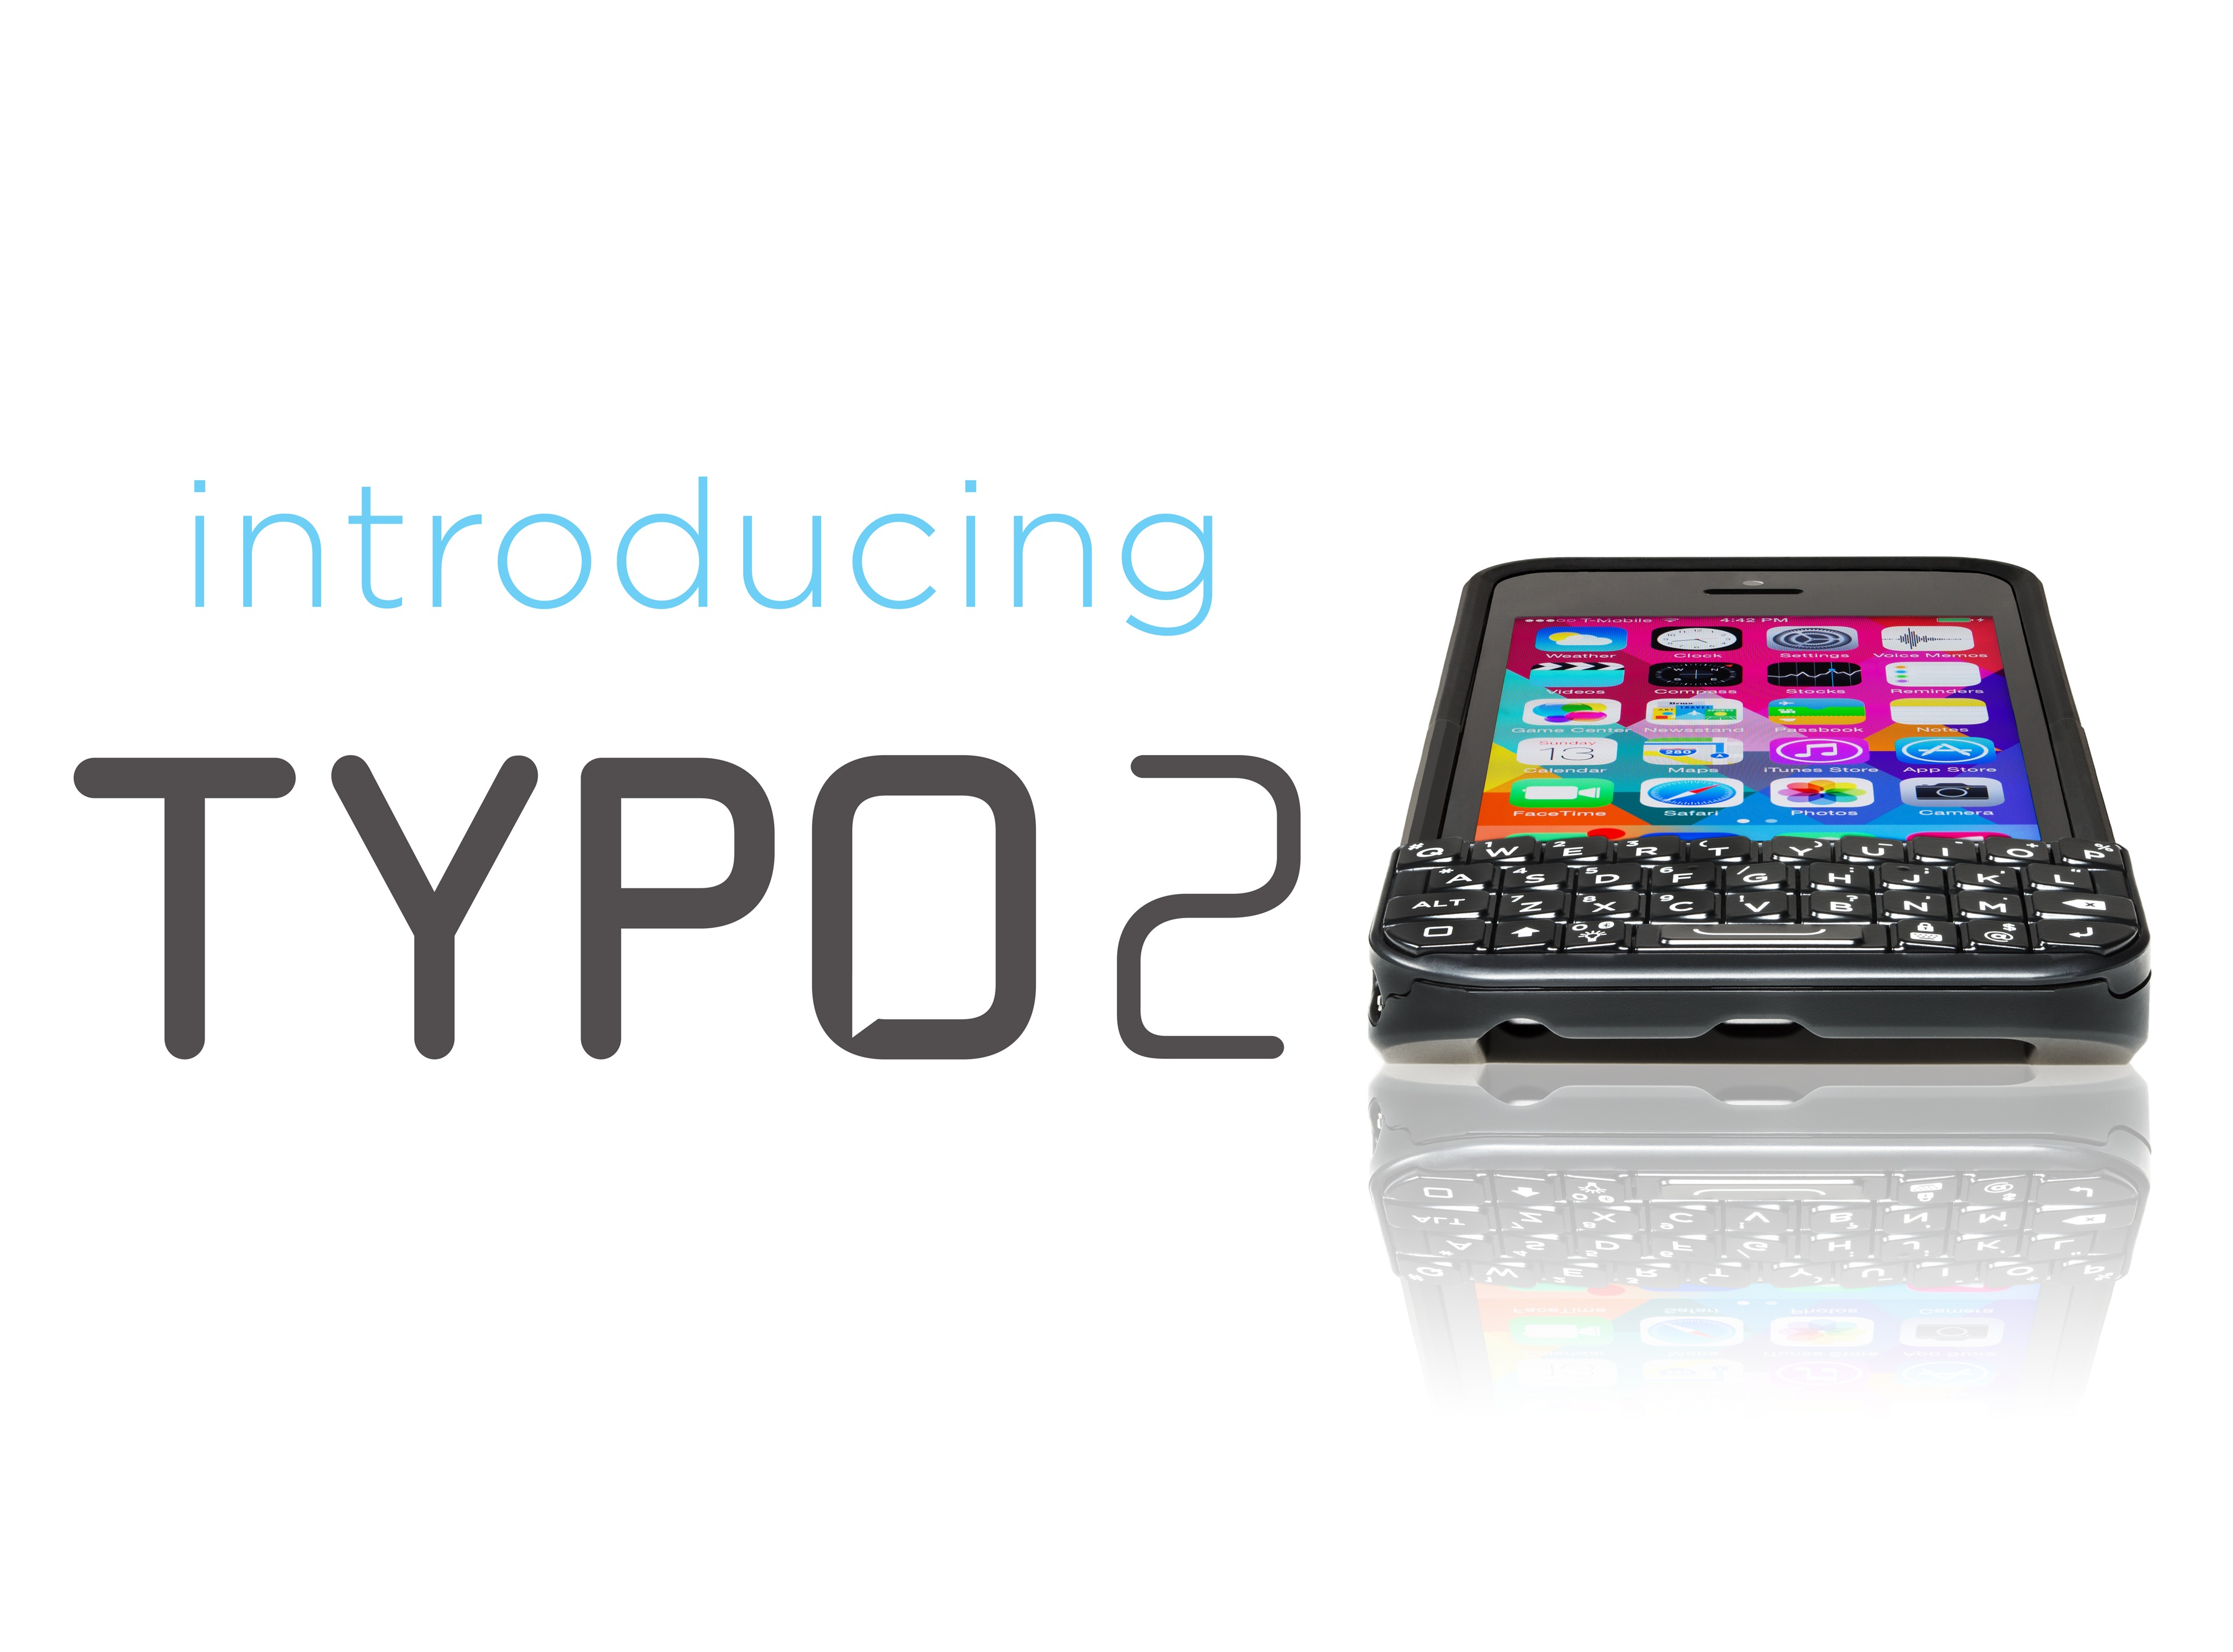 Ryan Seacrest's BlackBerry-like Typo iPhone keyboard case goes for a take-two